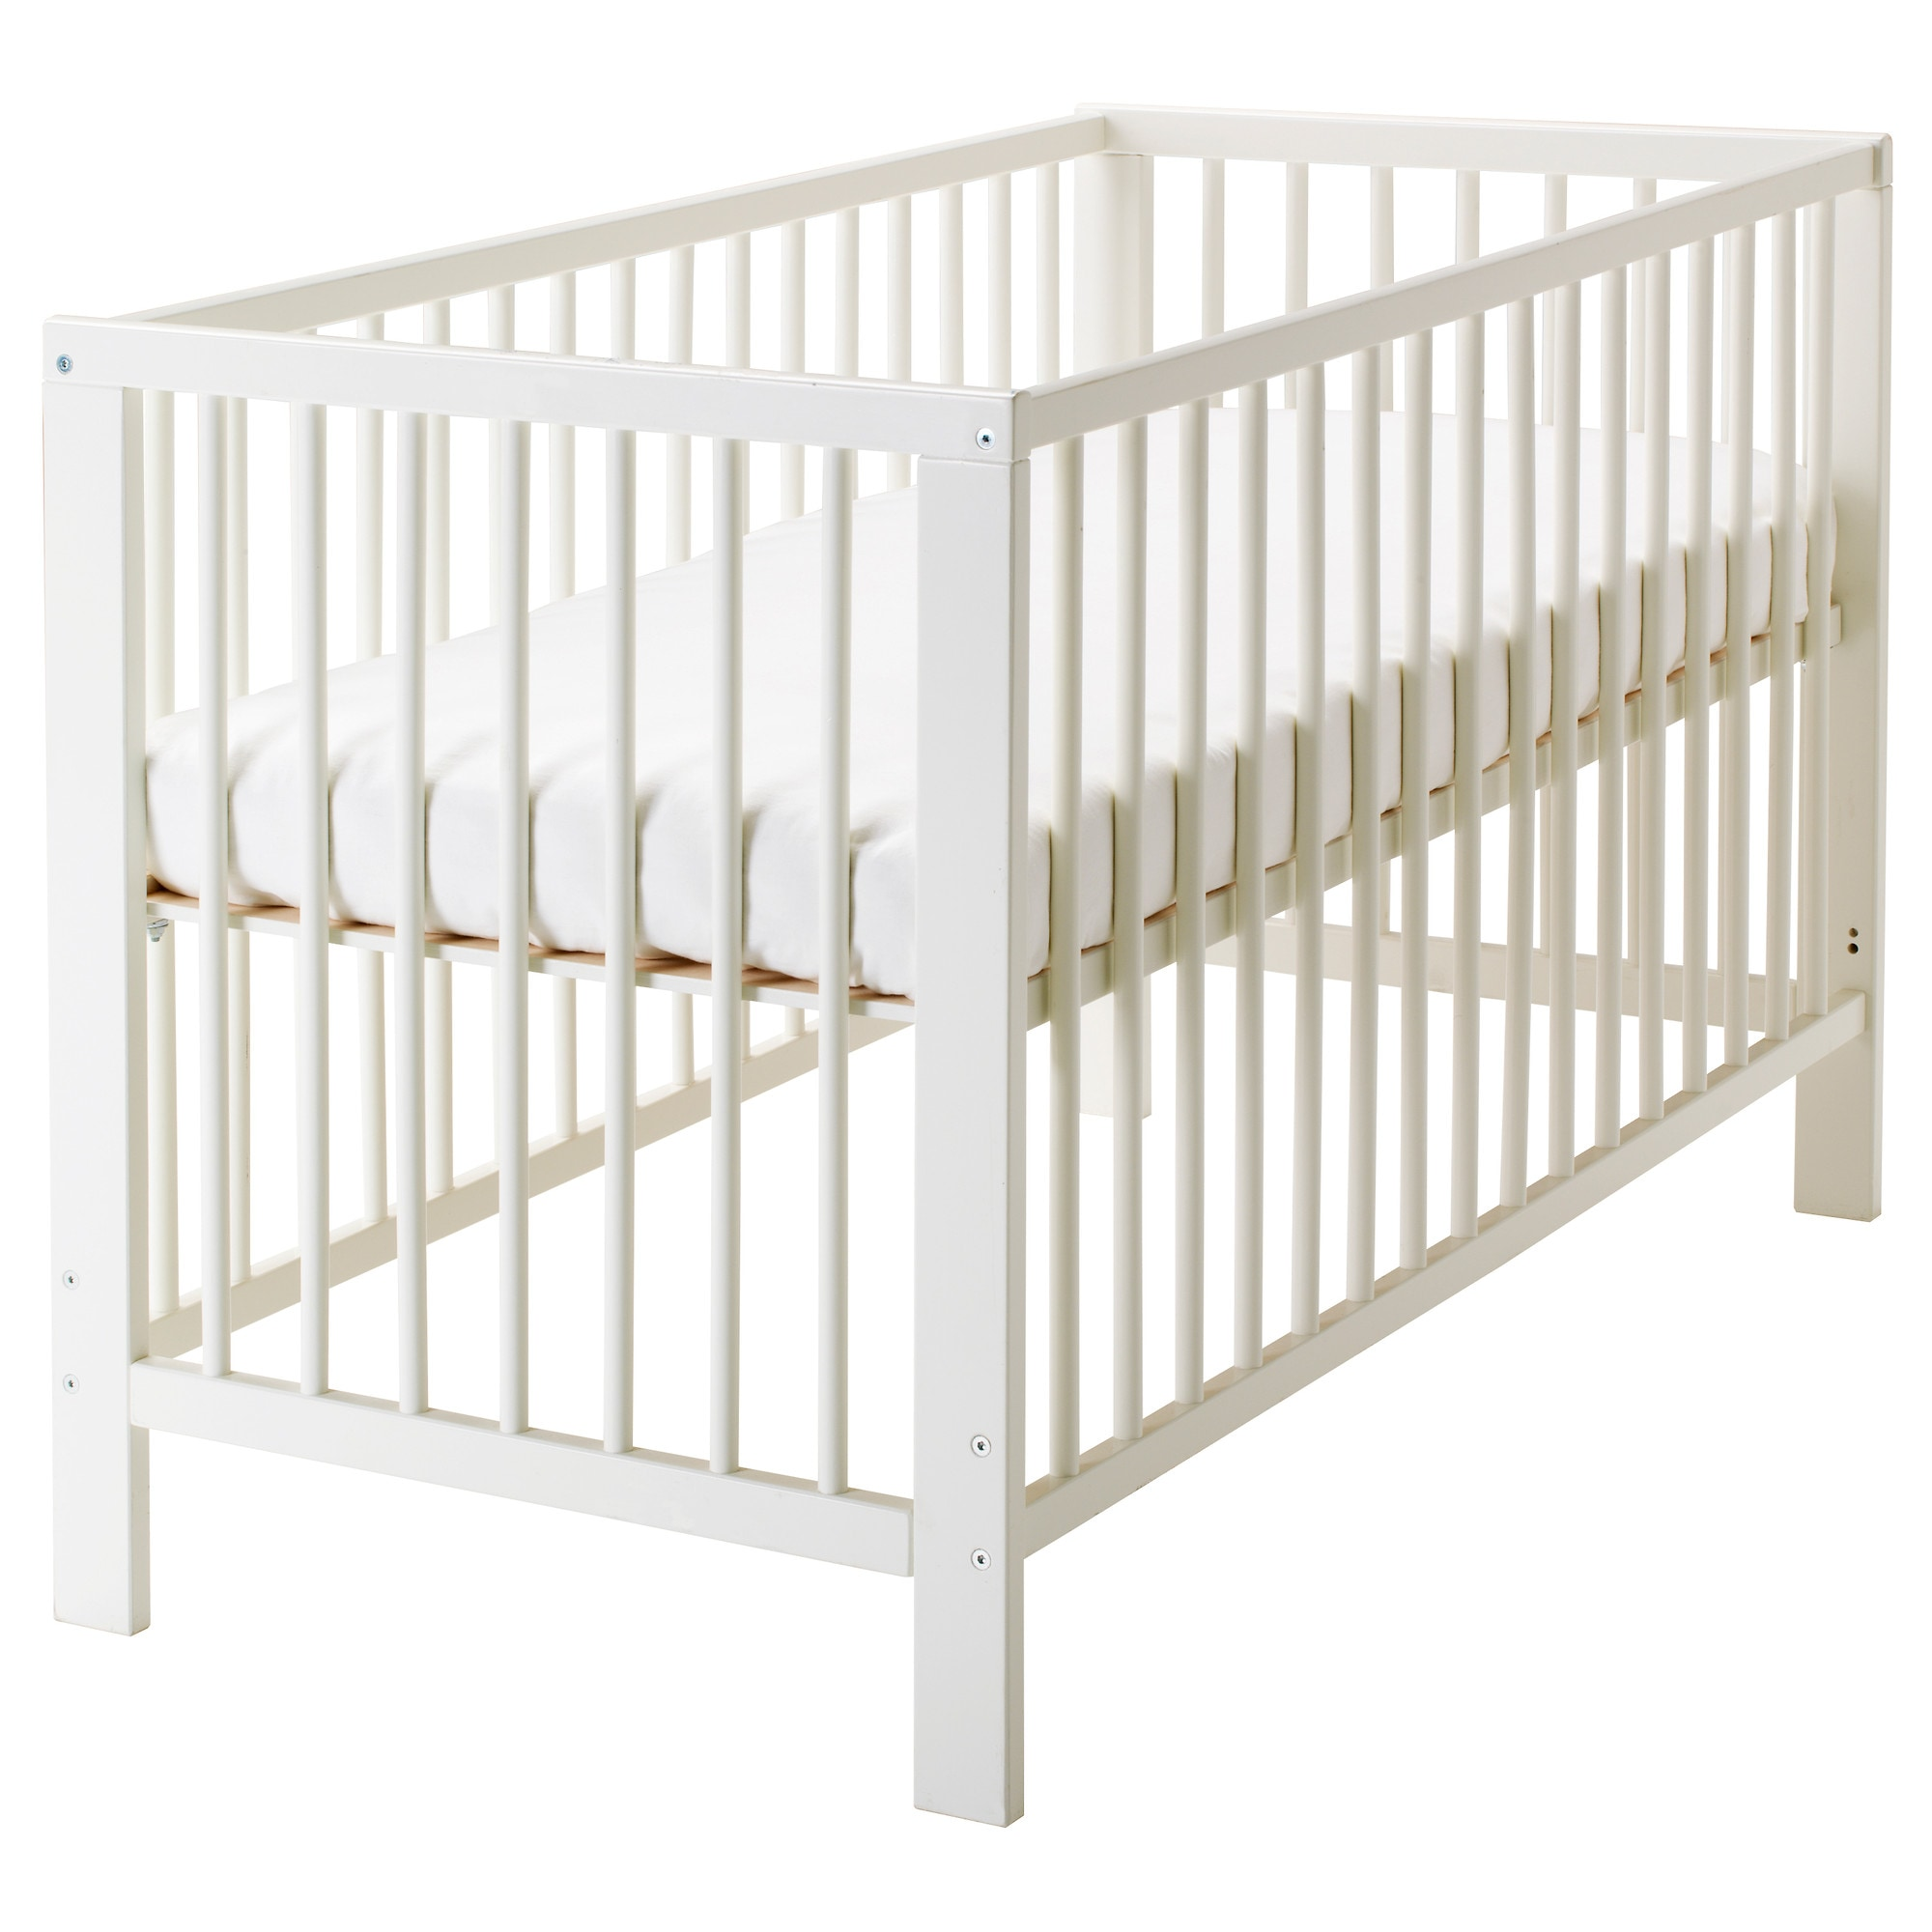 Baby bed extension uk - Gulliver Crib White Length 53 1 2 Width 29 1